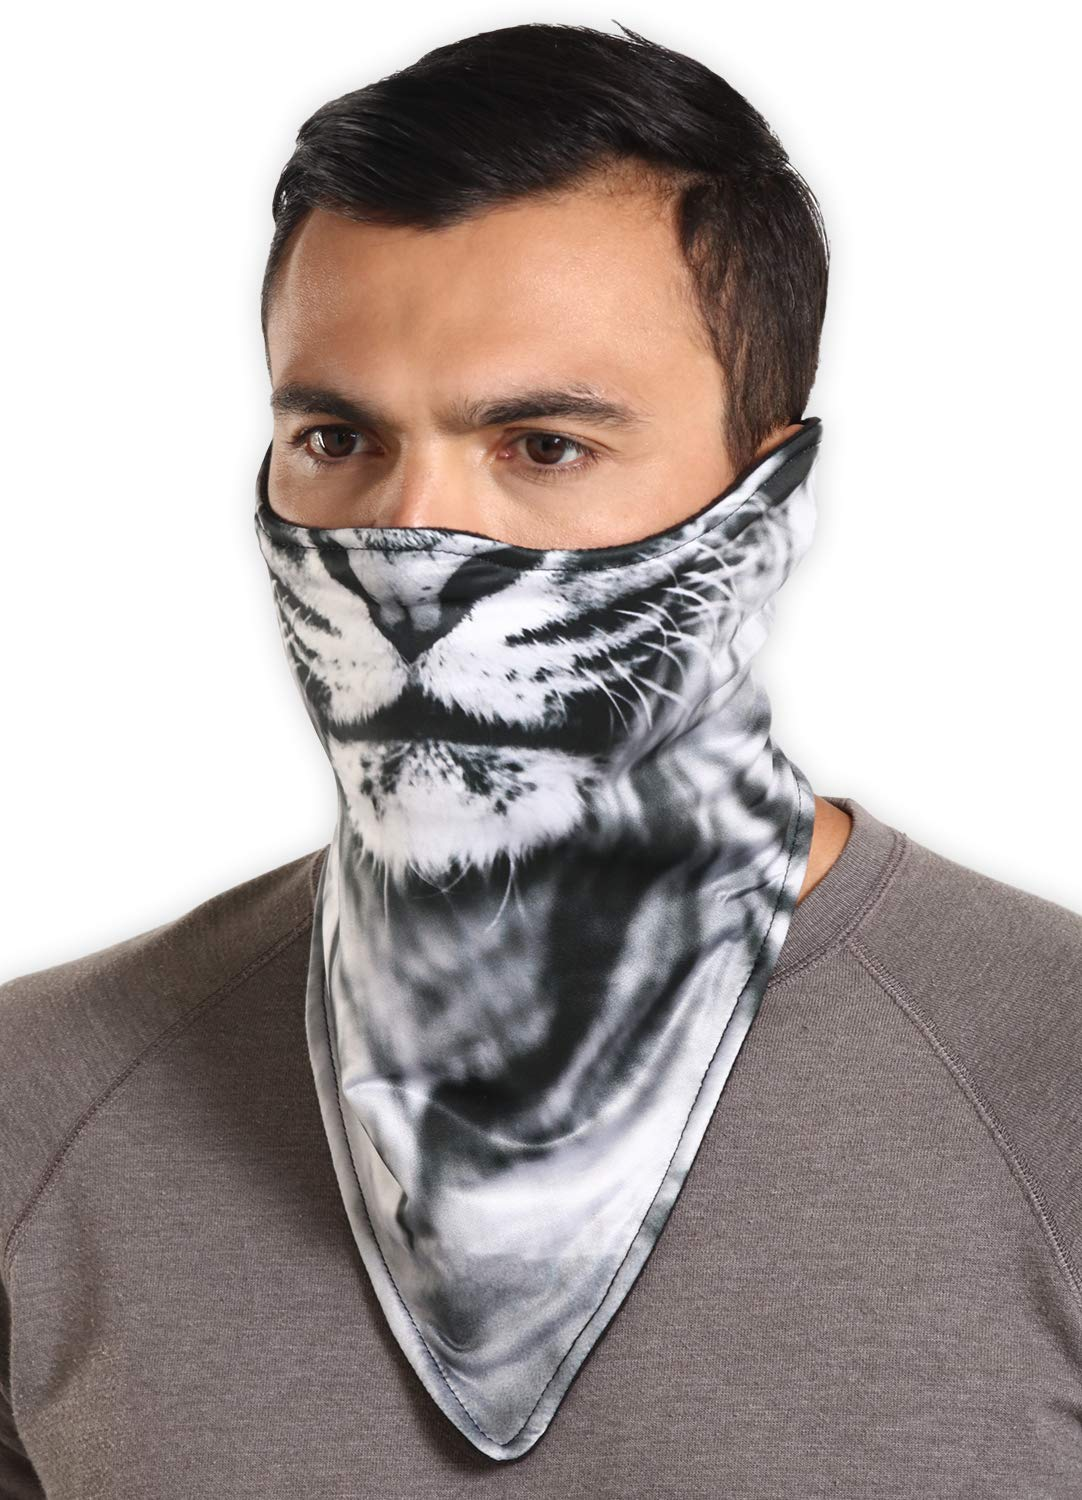 Tough Headwear Neoprene Ski Mask - Tactical Winter Face Mask - Perfect for Skiing, Snowboarding & Motorcycling (Lion)